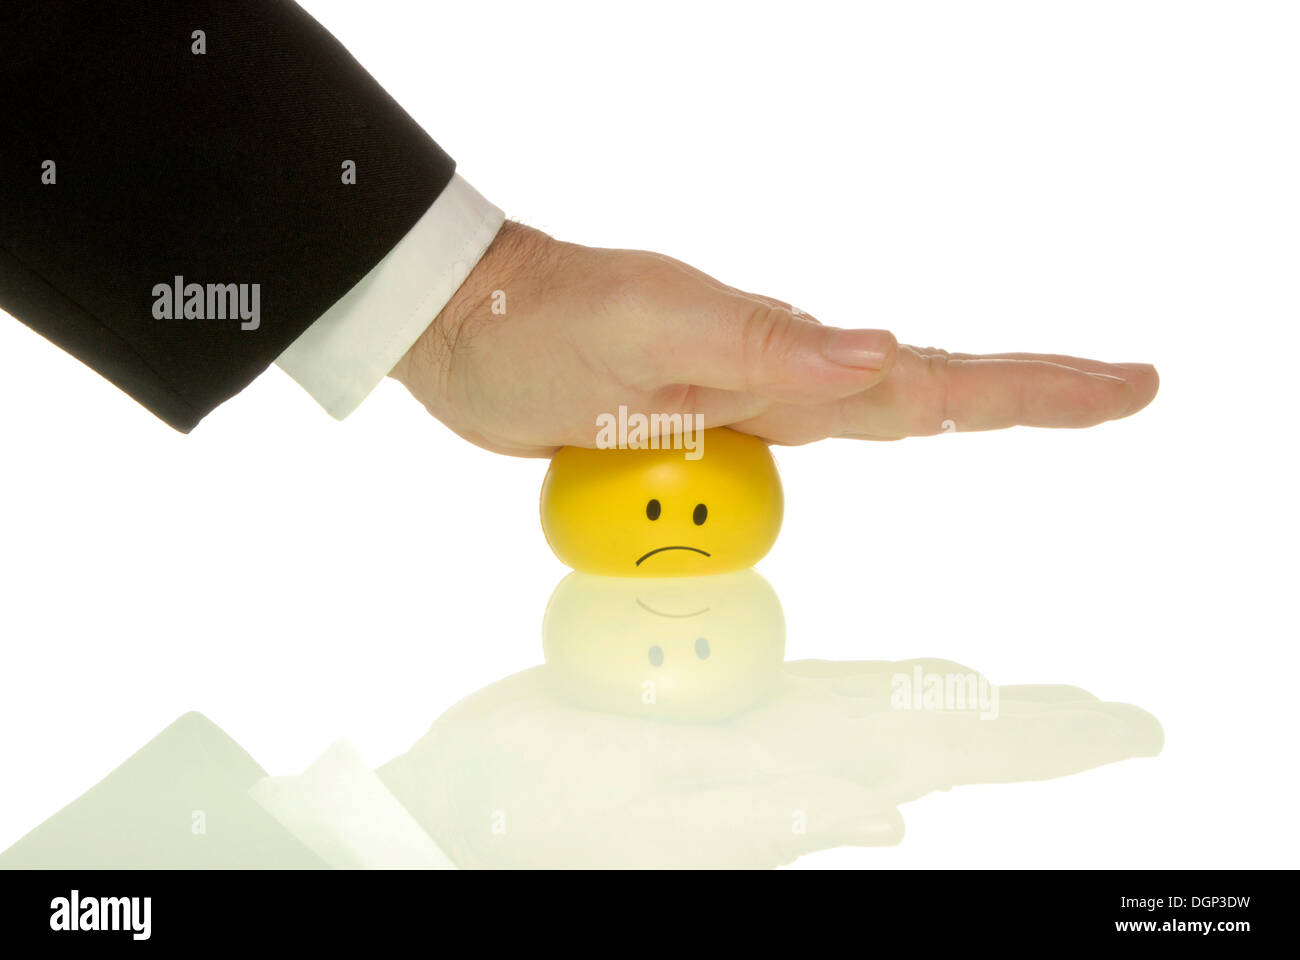 Businessman pressing his palm down on a smiley, symbolic image for pressure to perform - Stock Image